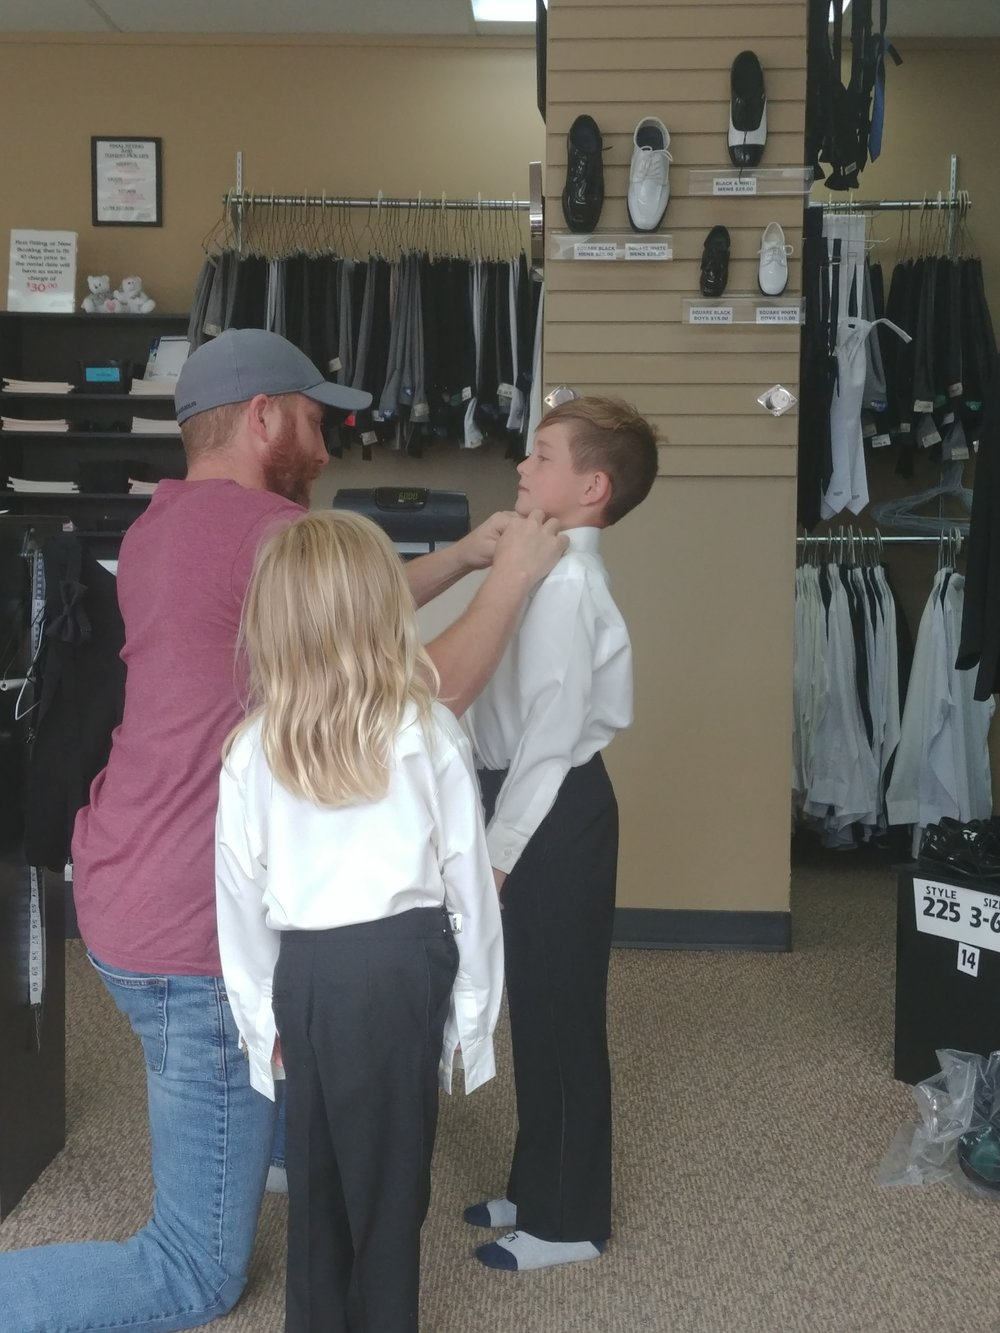 The boys getting fitted for their tuxes.